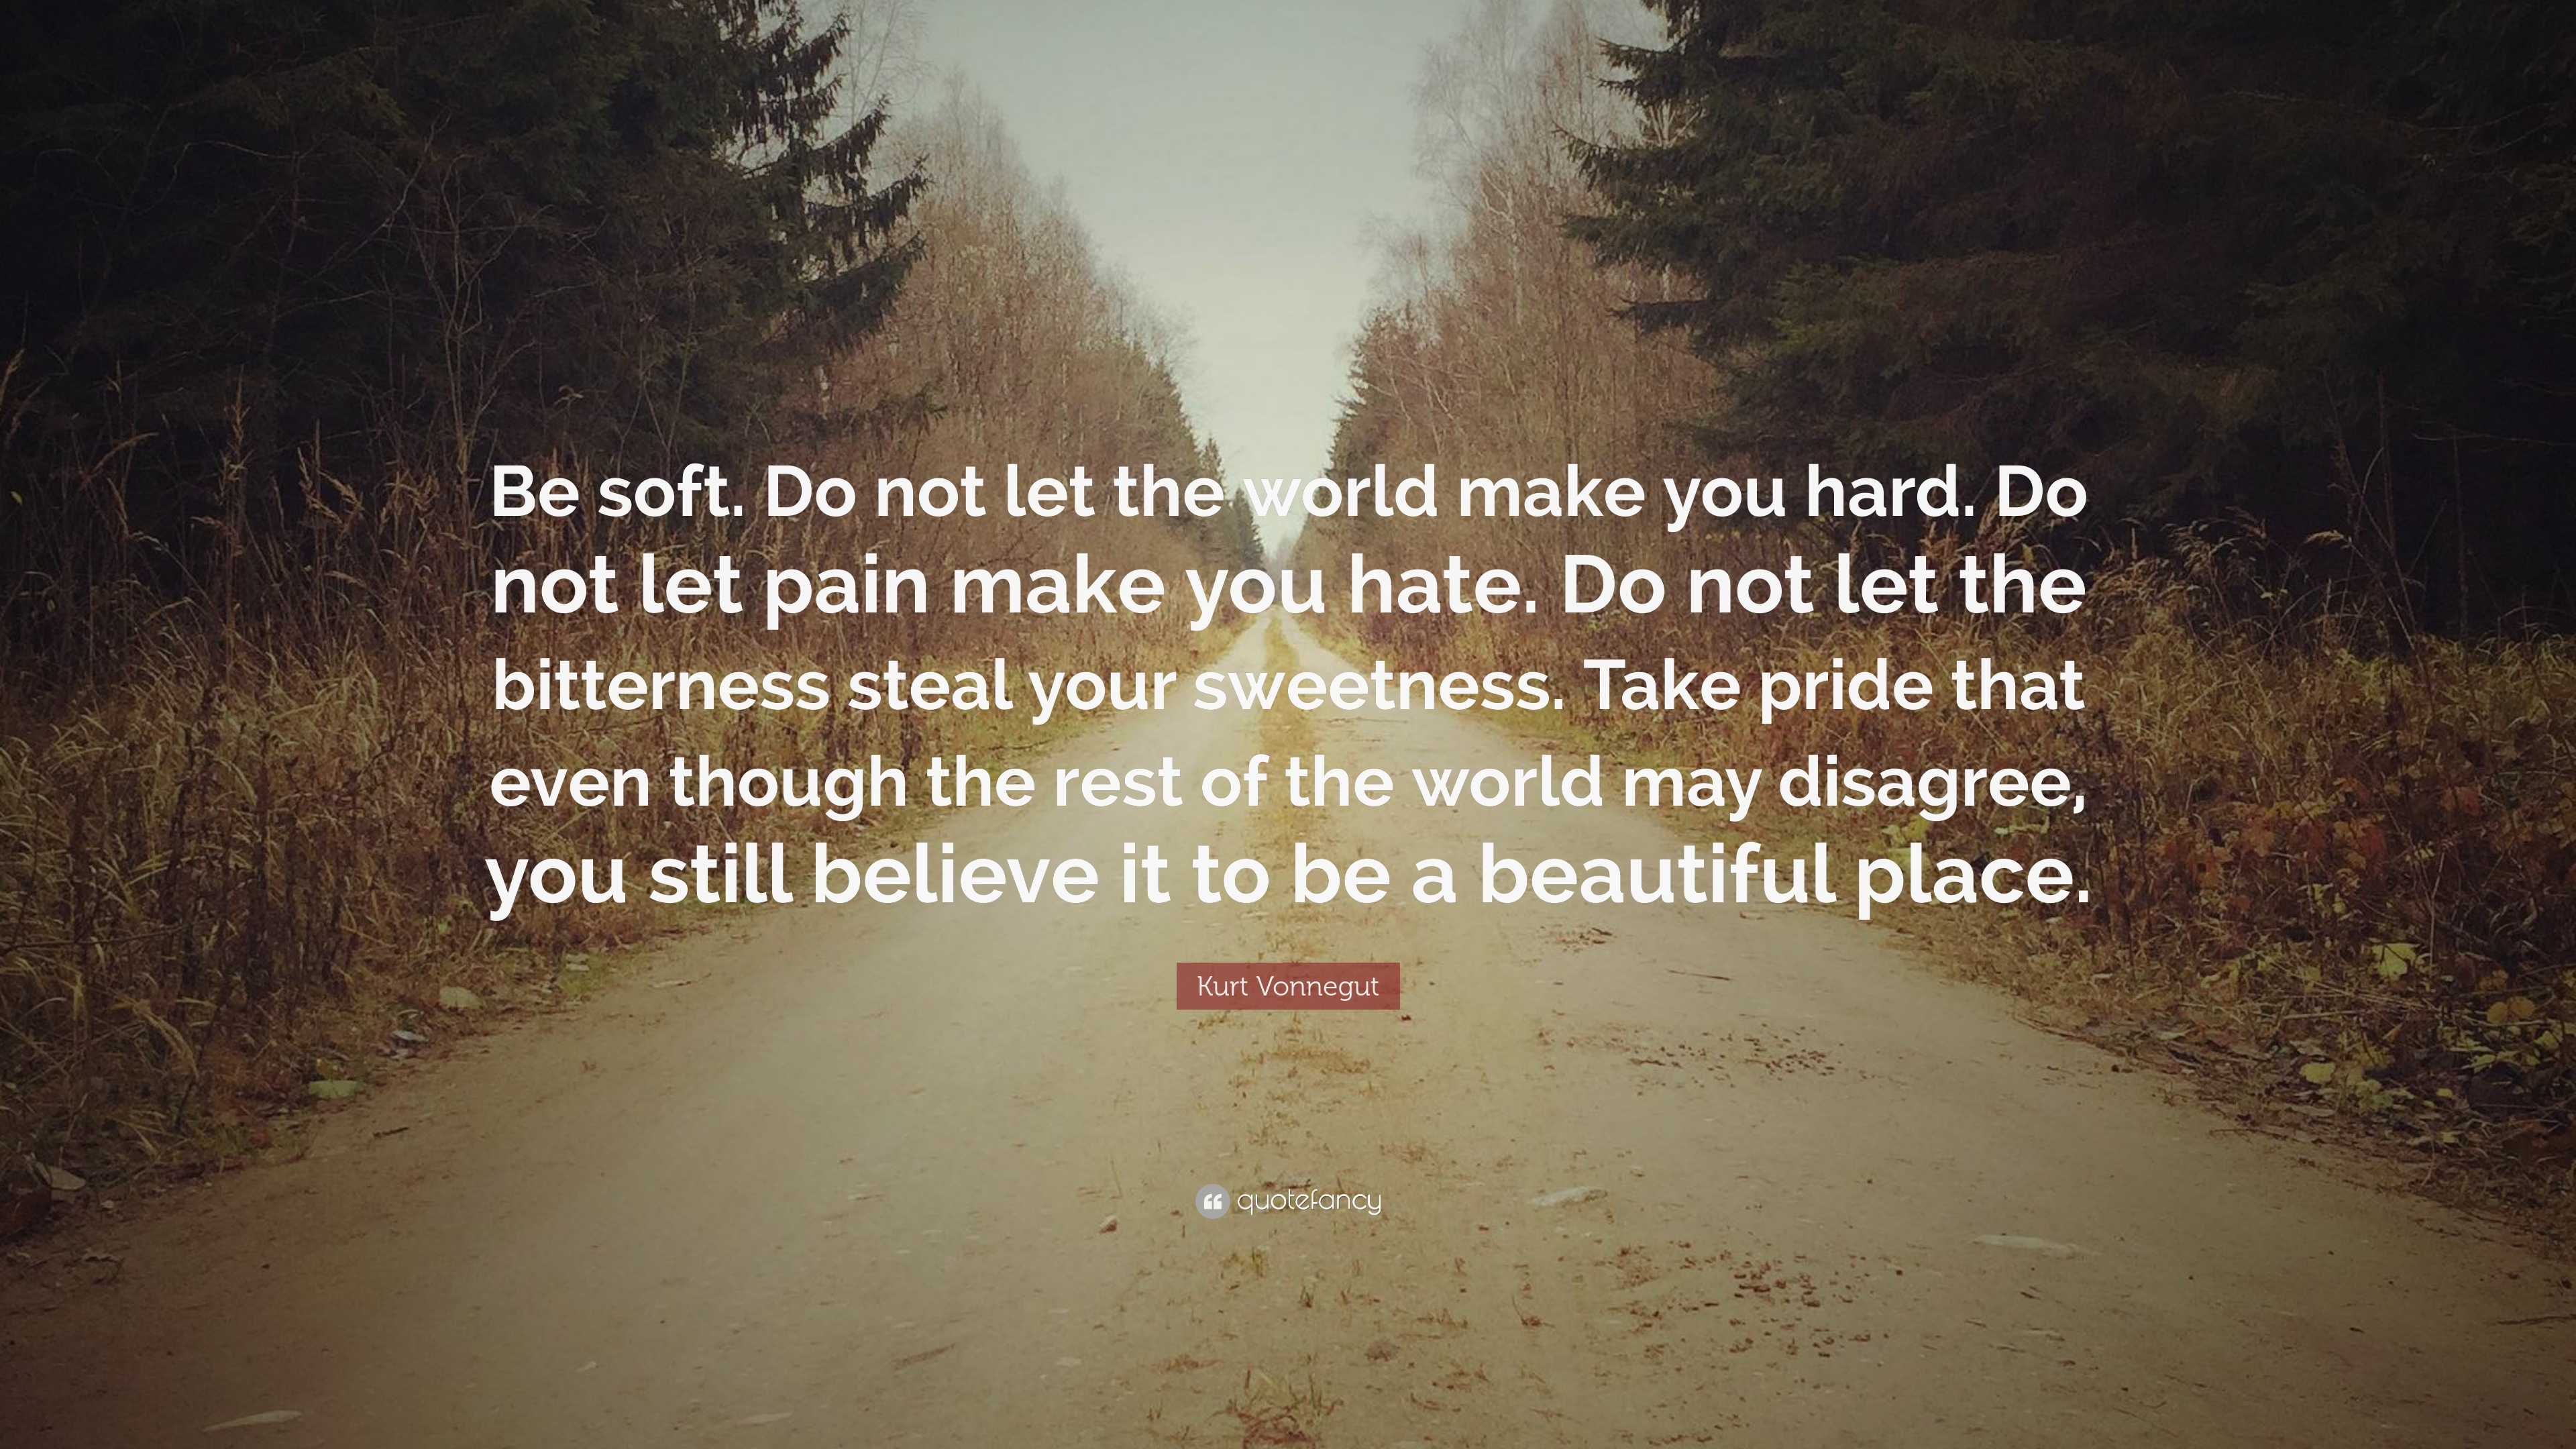 Kurt Vonnegut Quote Be Soft Do Not Let The World Make You Hard